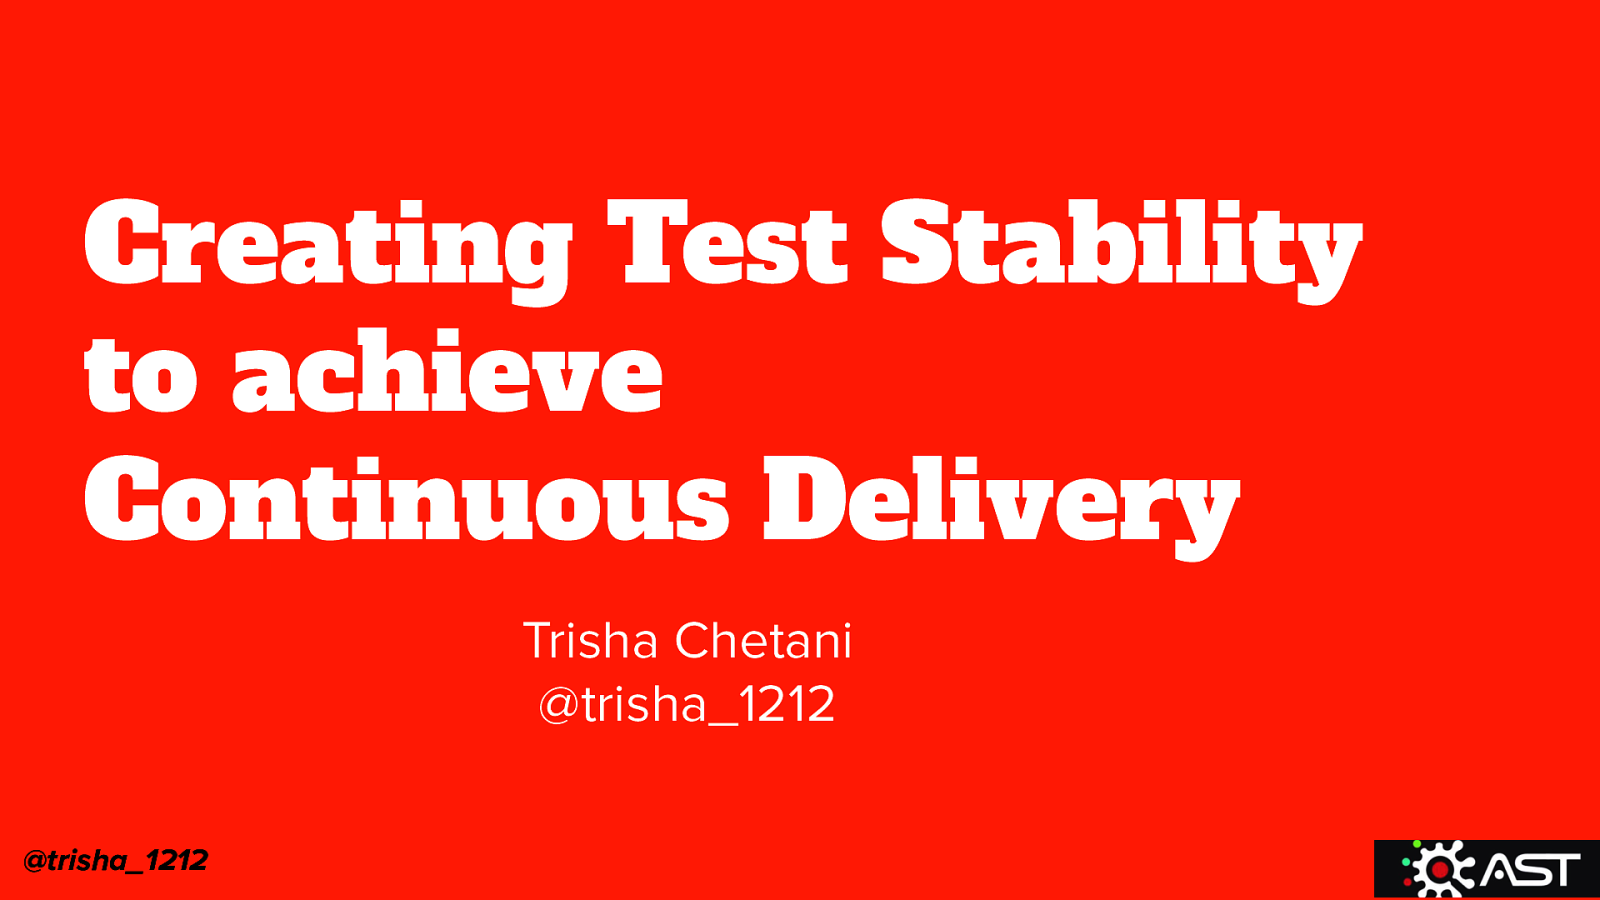 Creating Test Stability to Create Continuous Delivery